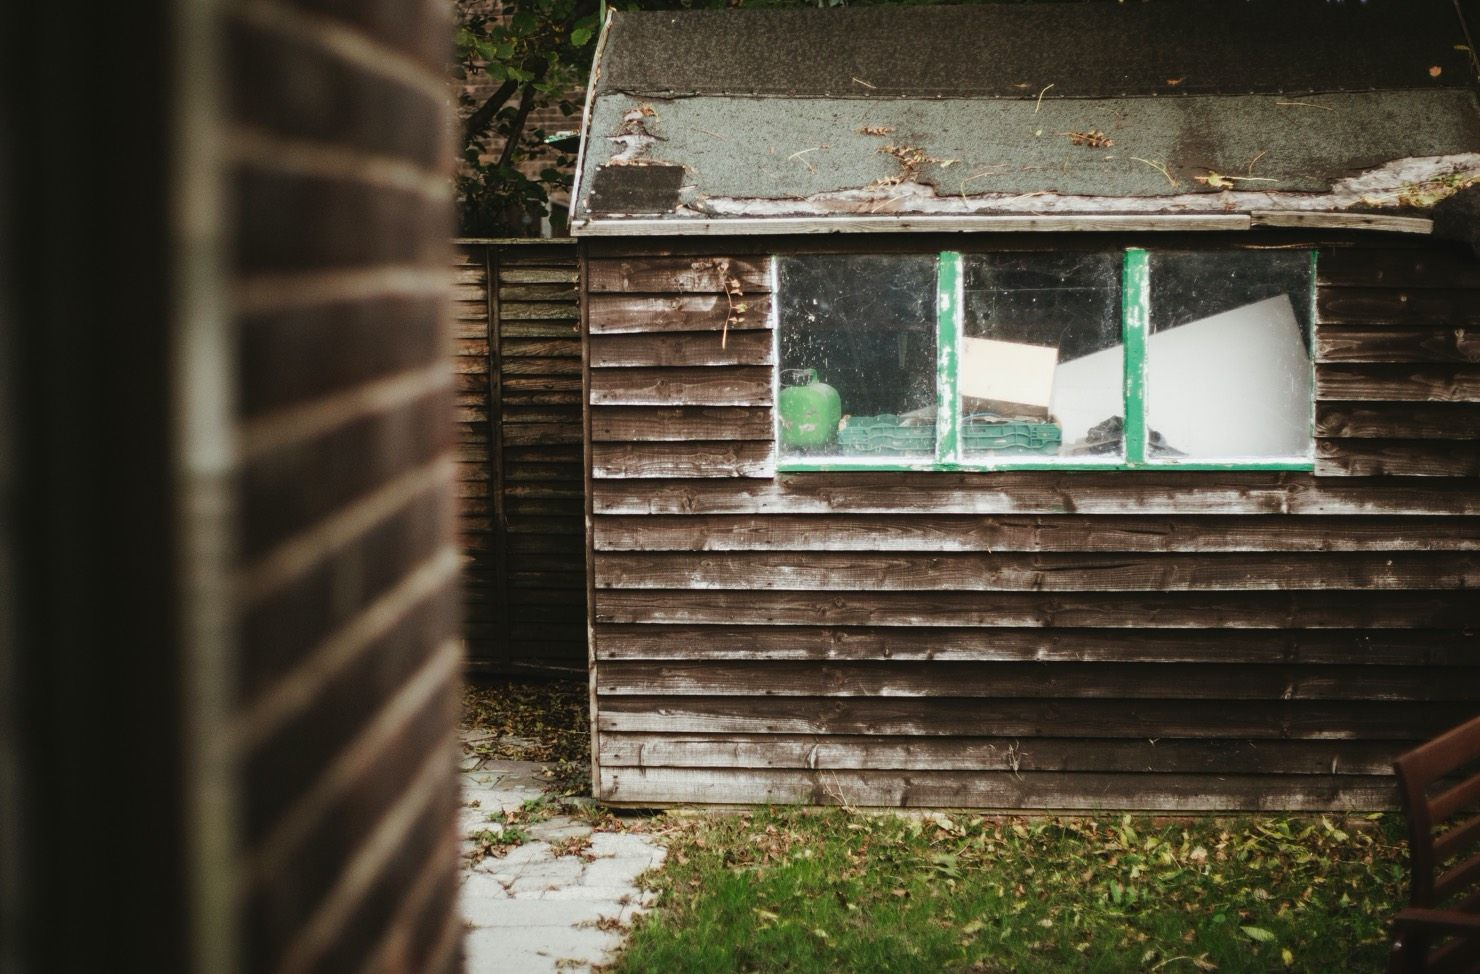 shed in a back garden